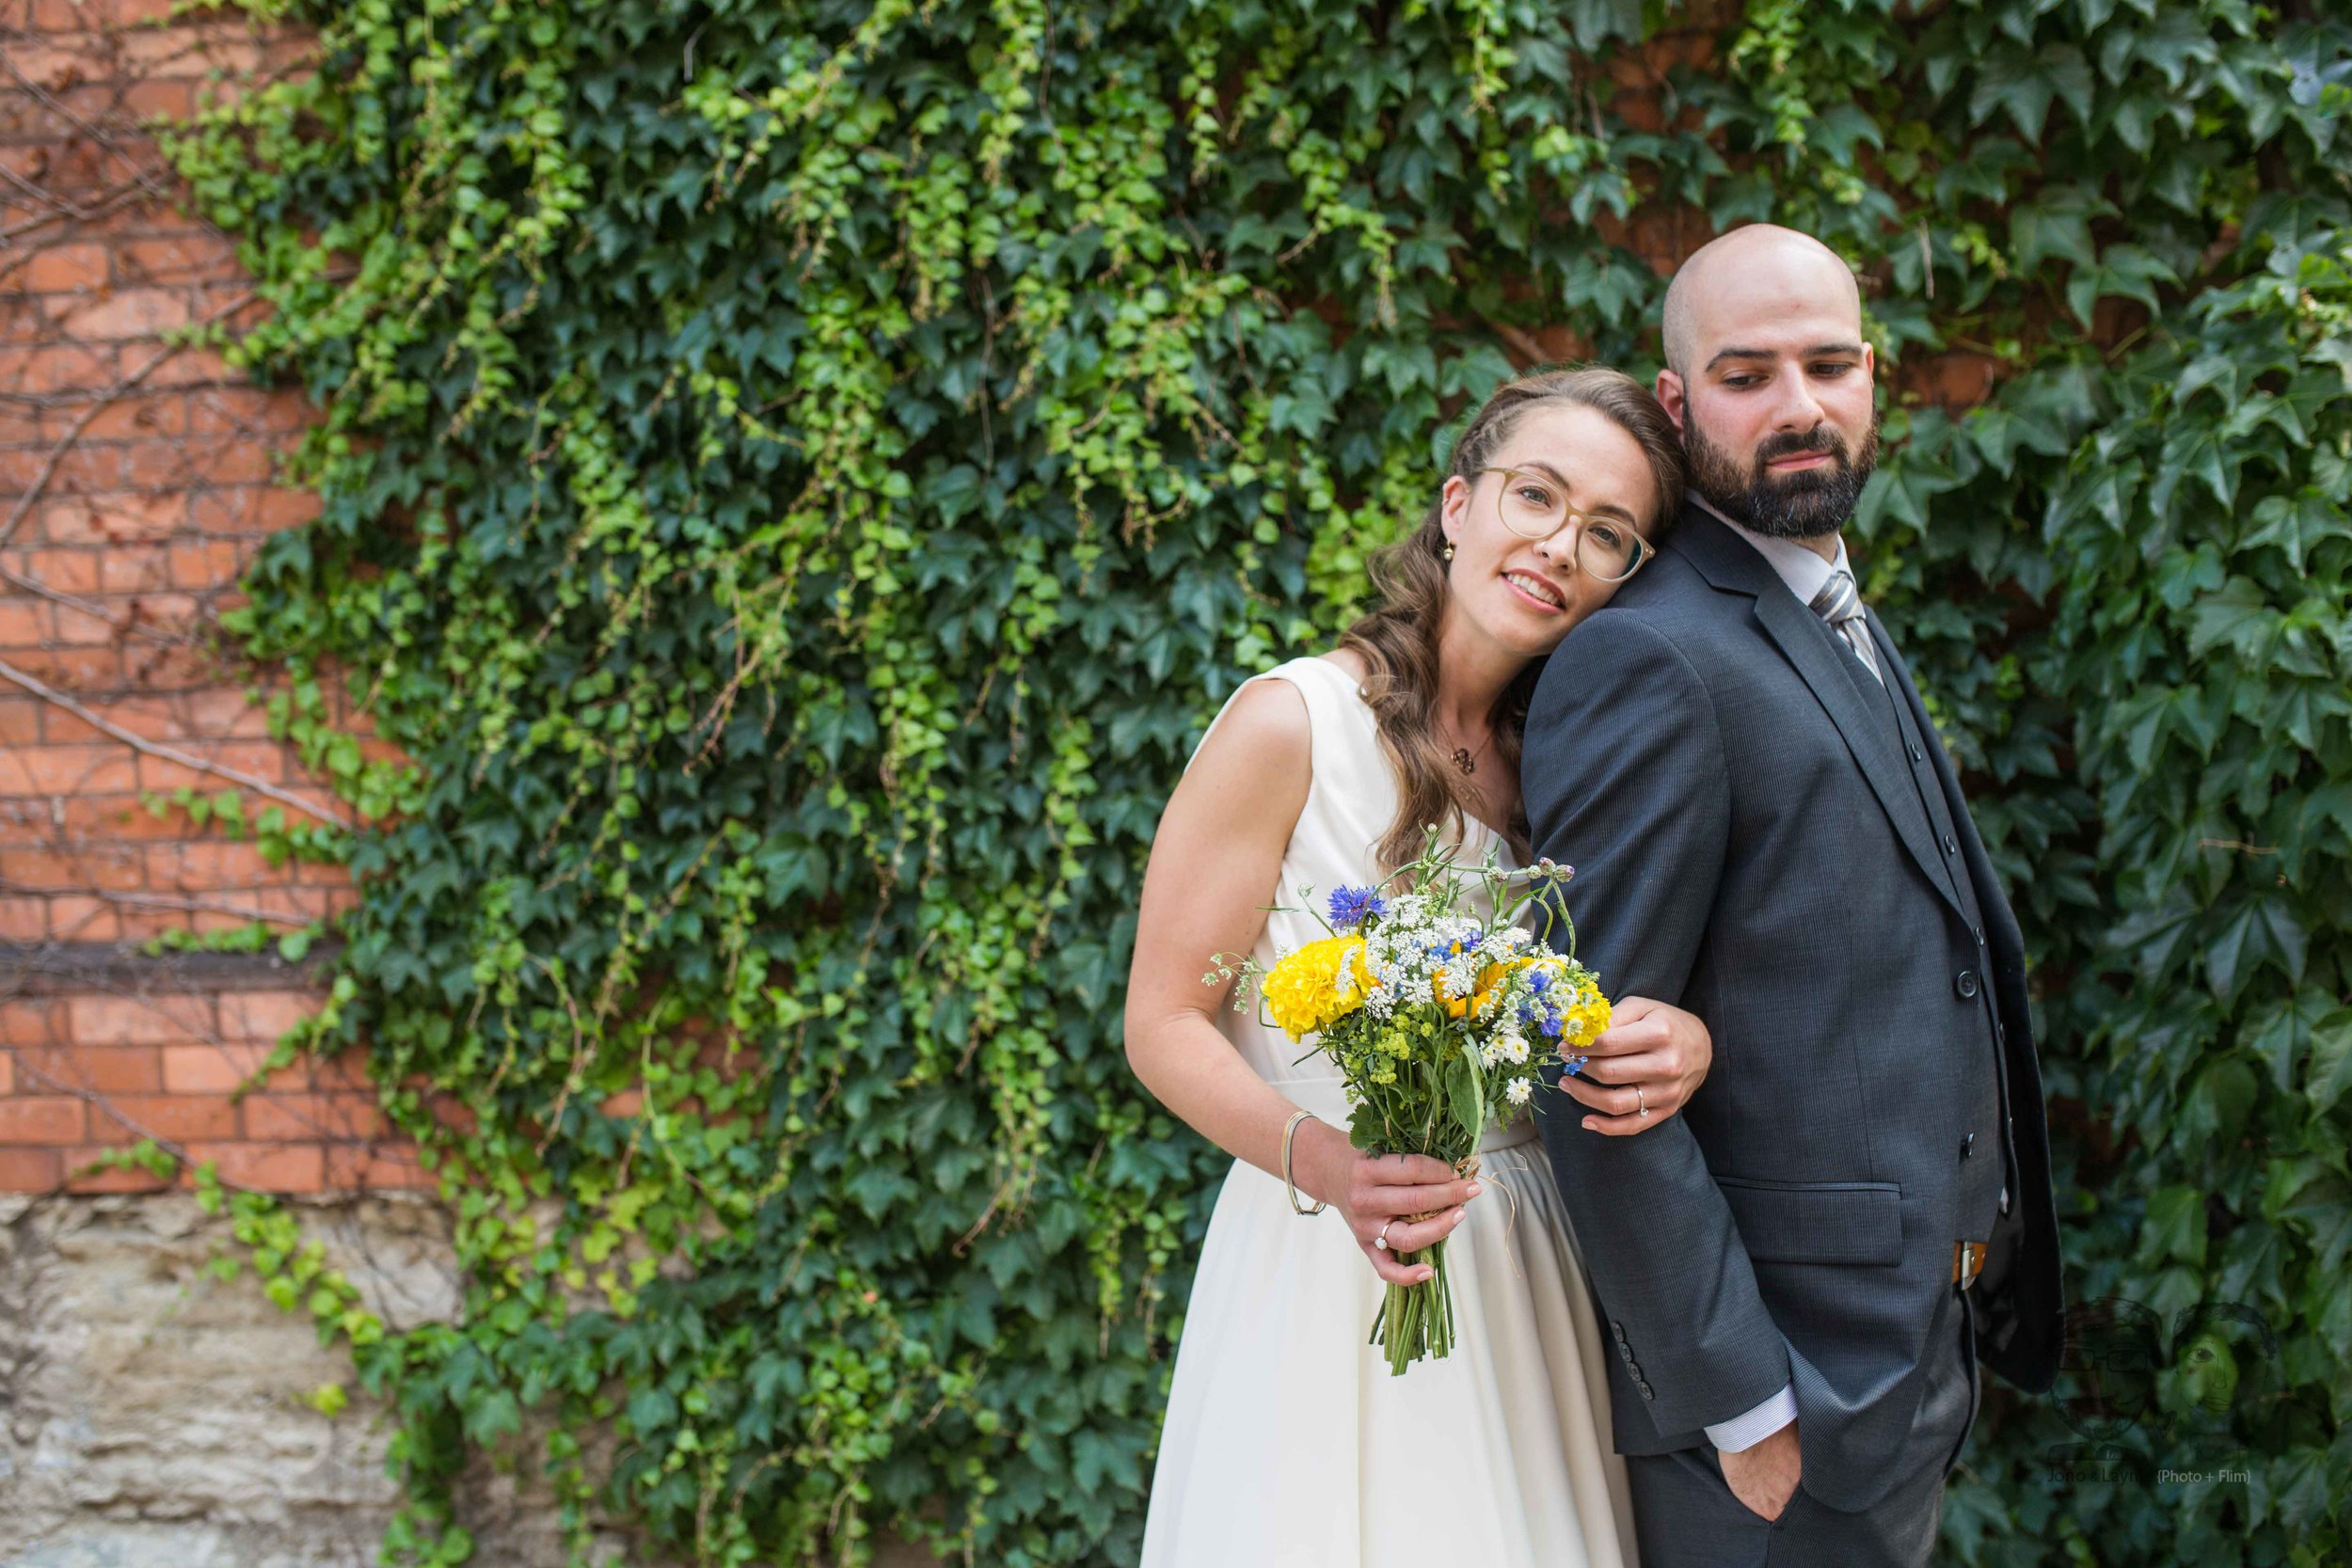 We are wedding and lifestyle photographers serving the Niagara and Toronto regions. We love working in places like the Spice Factory in Hamilton because there is so much natural beauty at our fingertips.